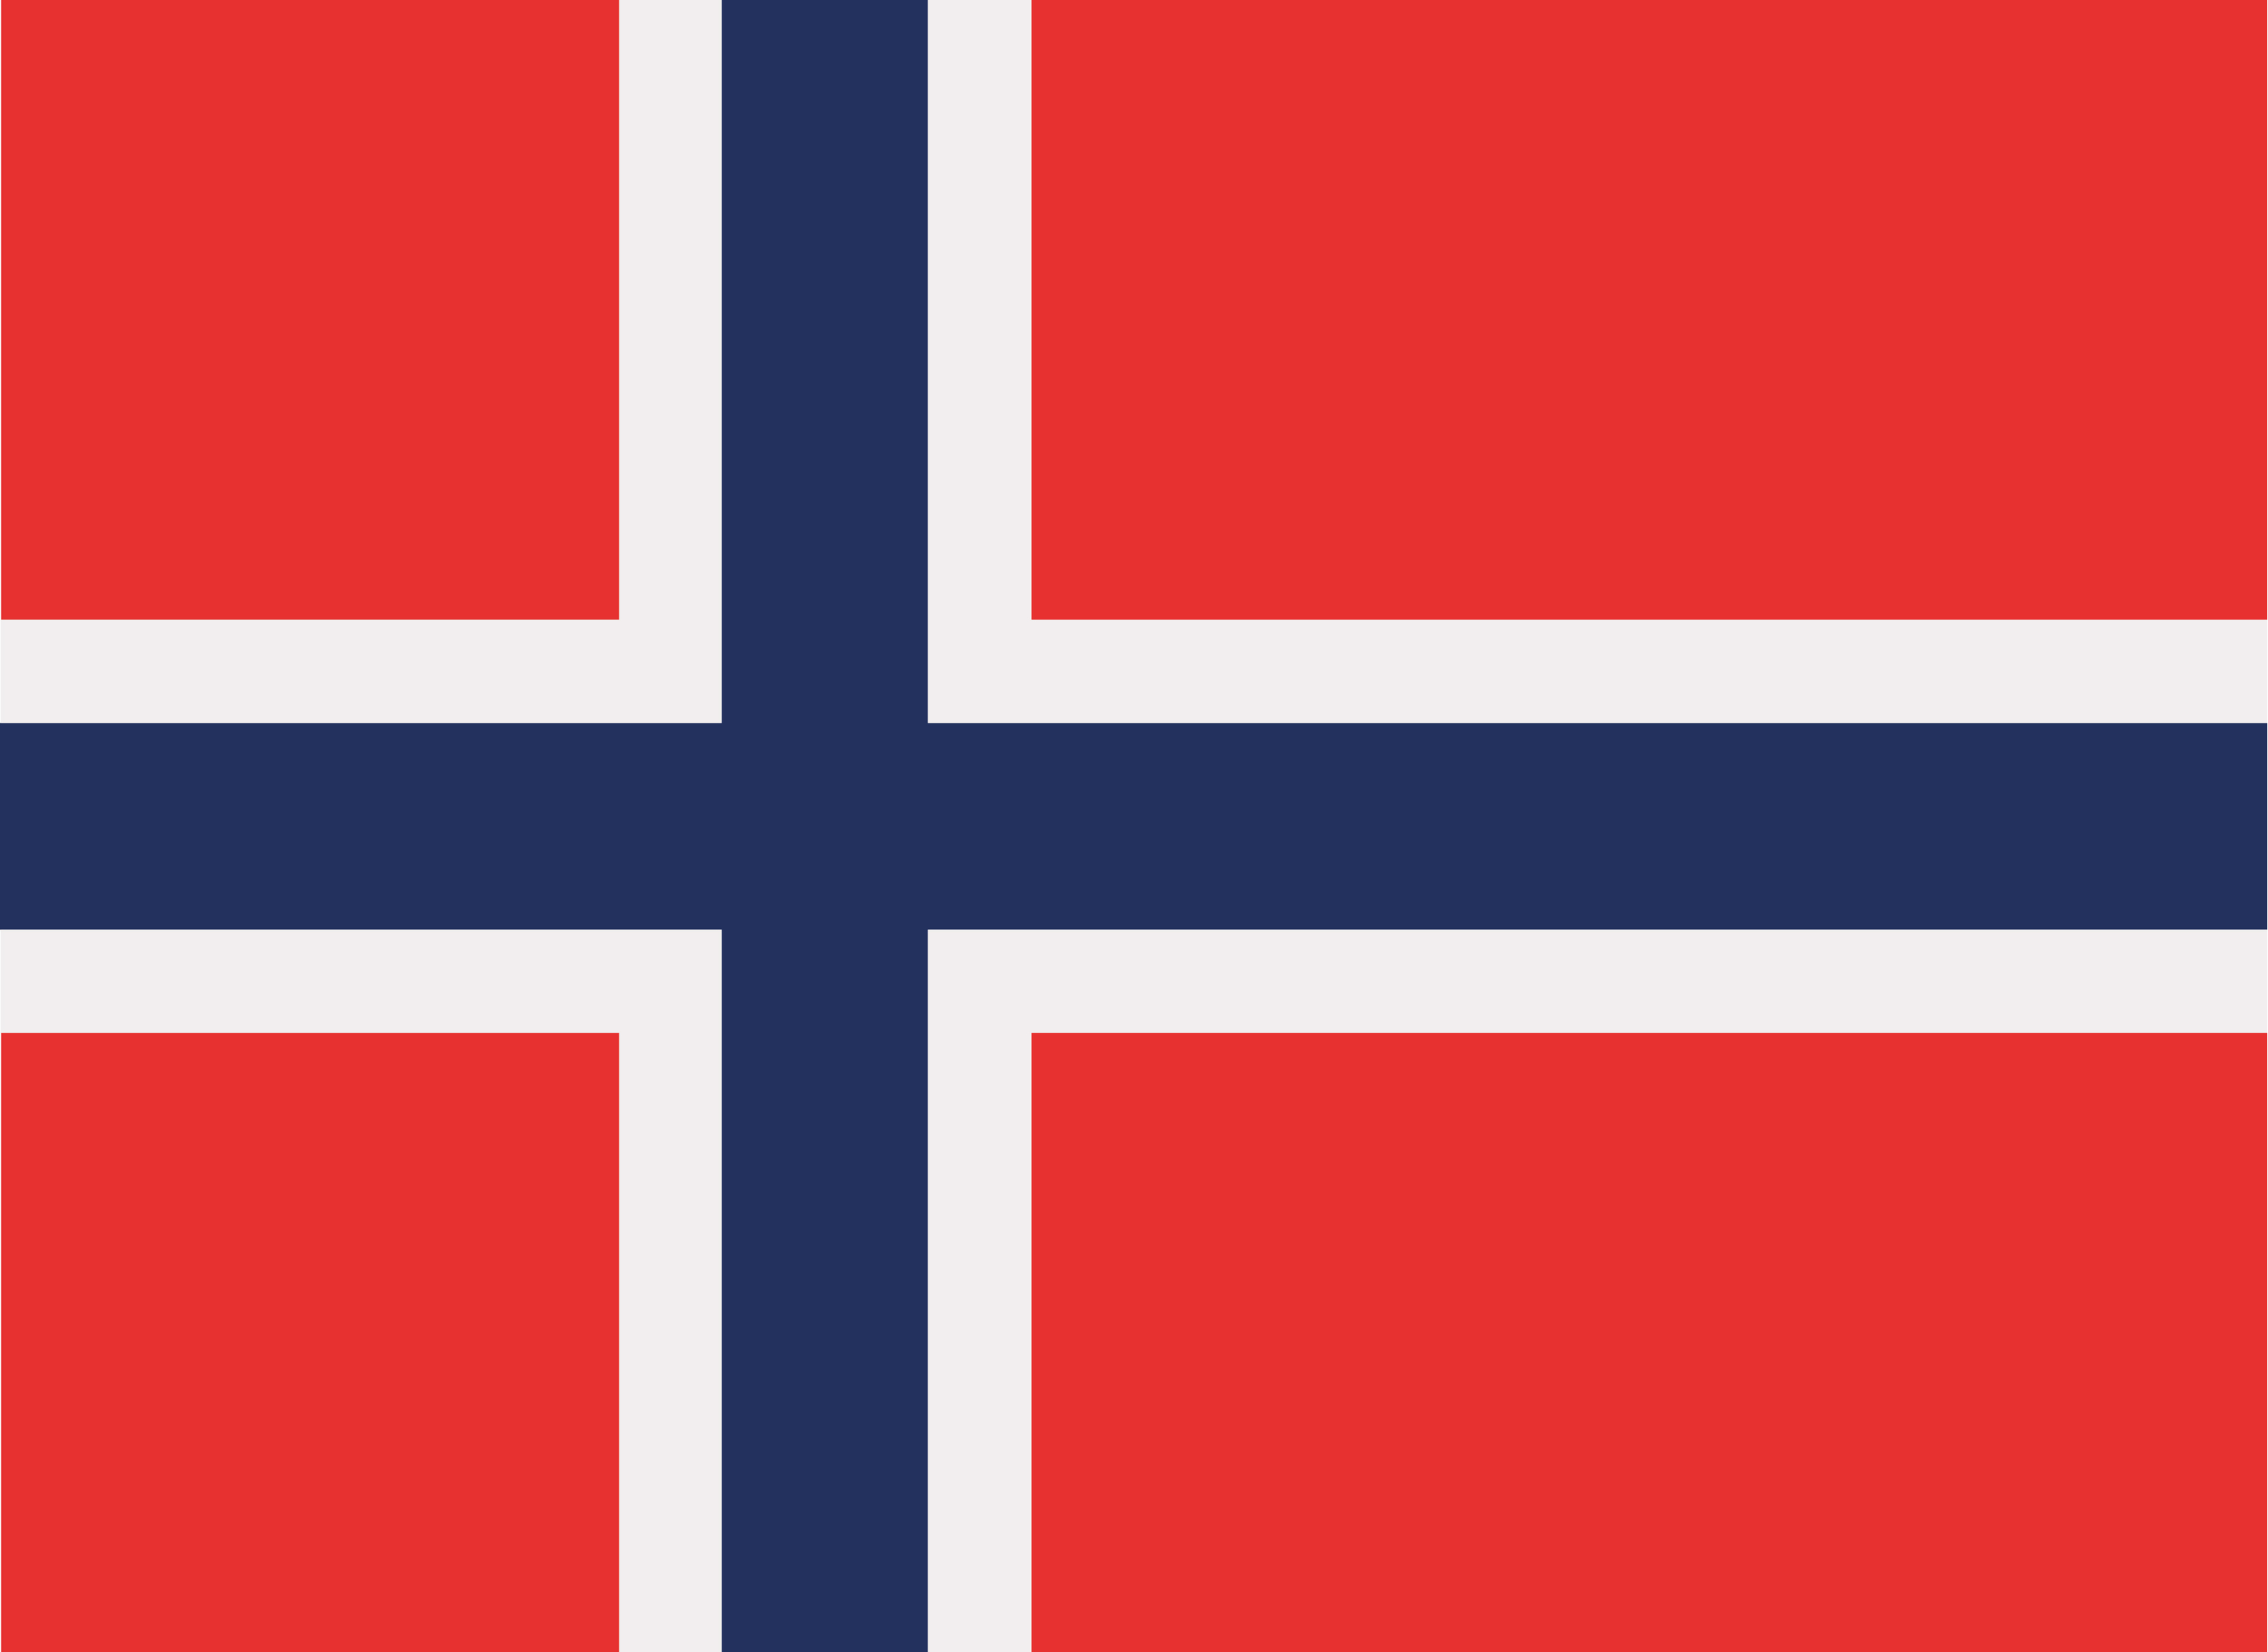 The official flag of Norway.